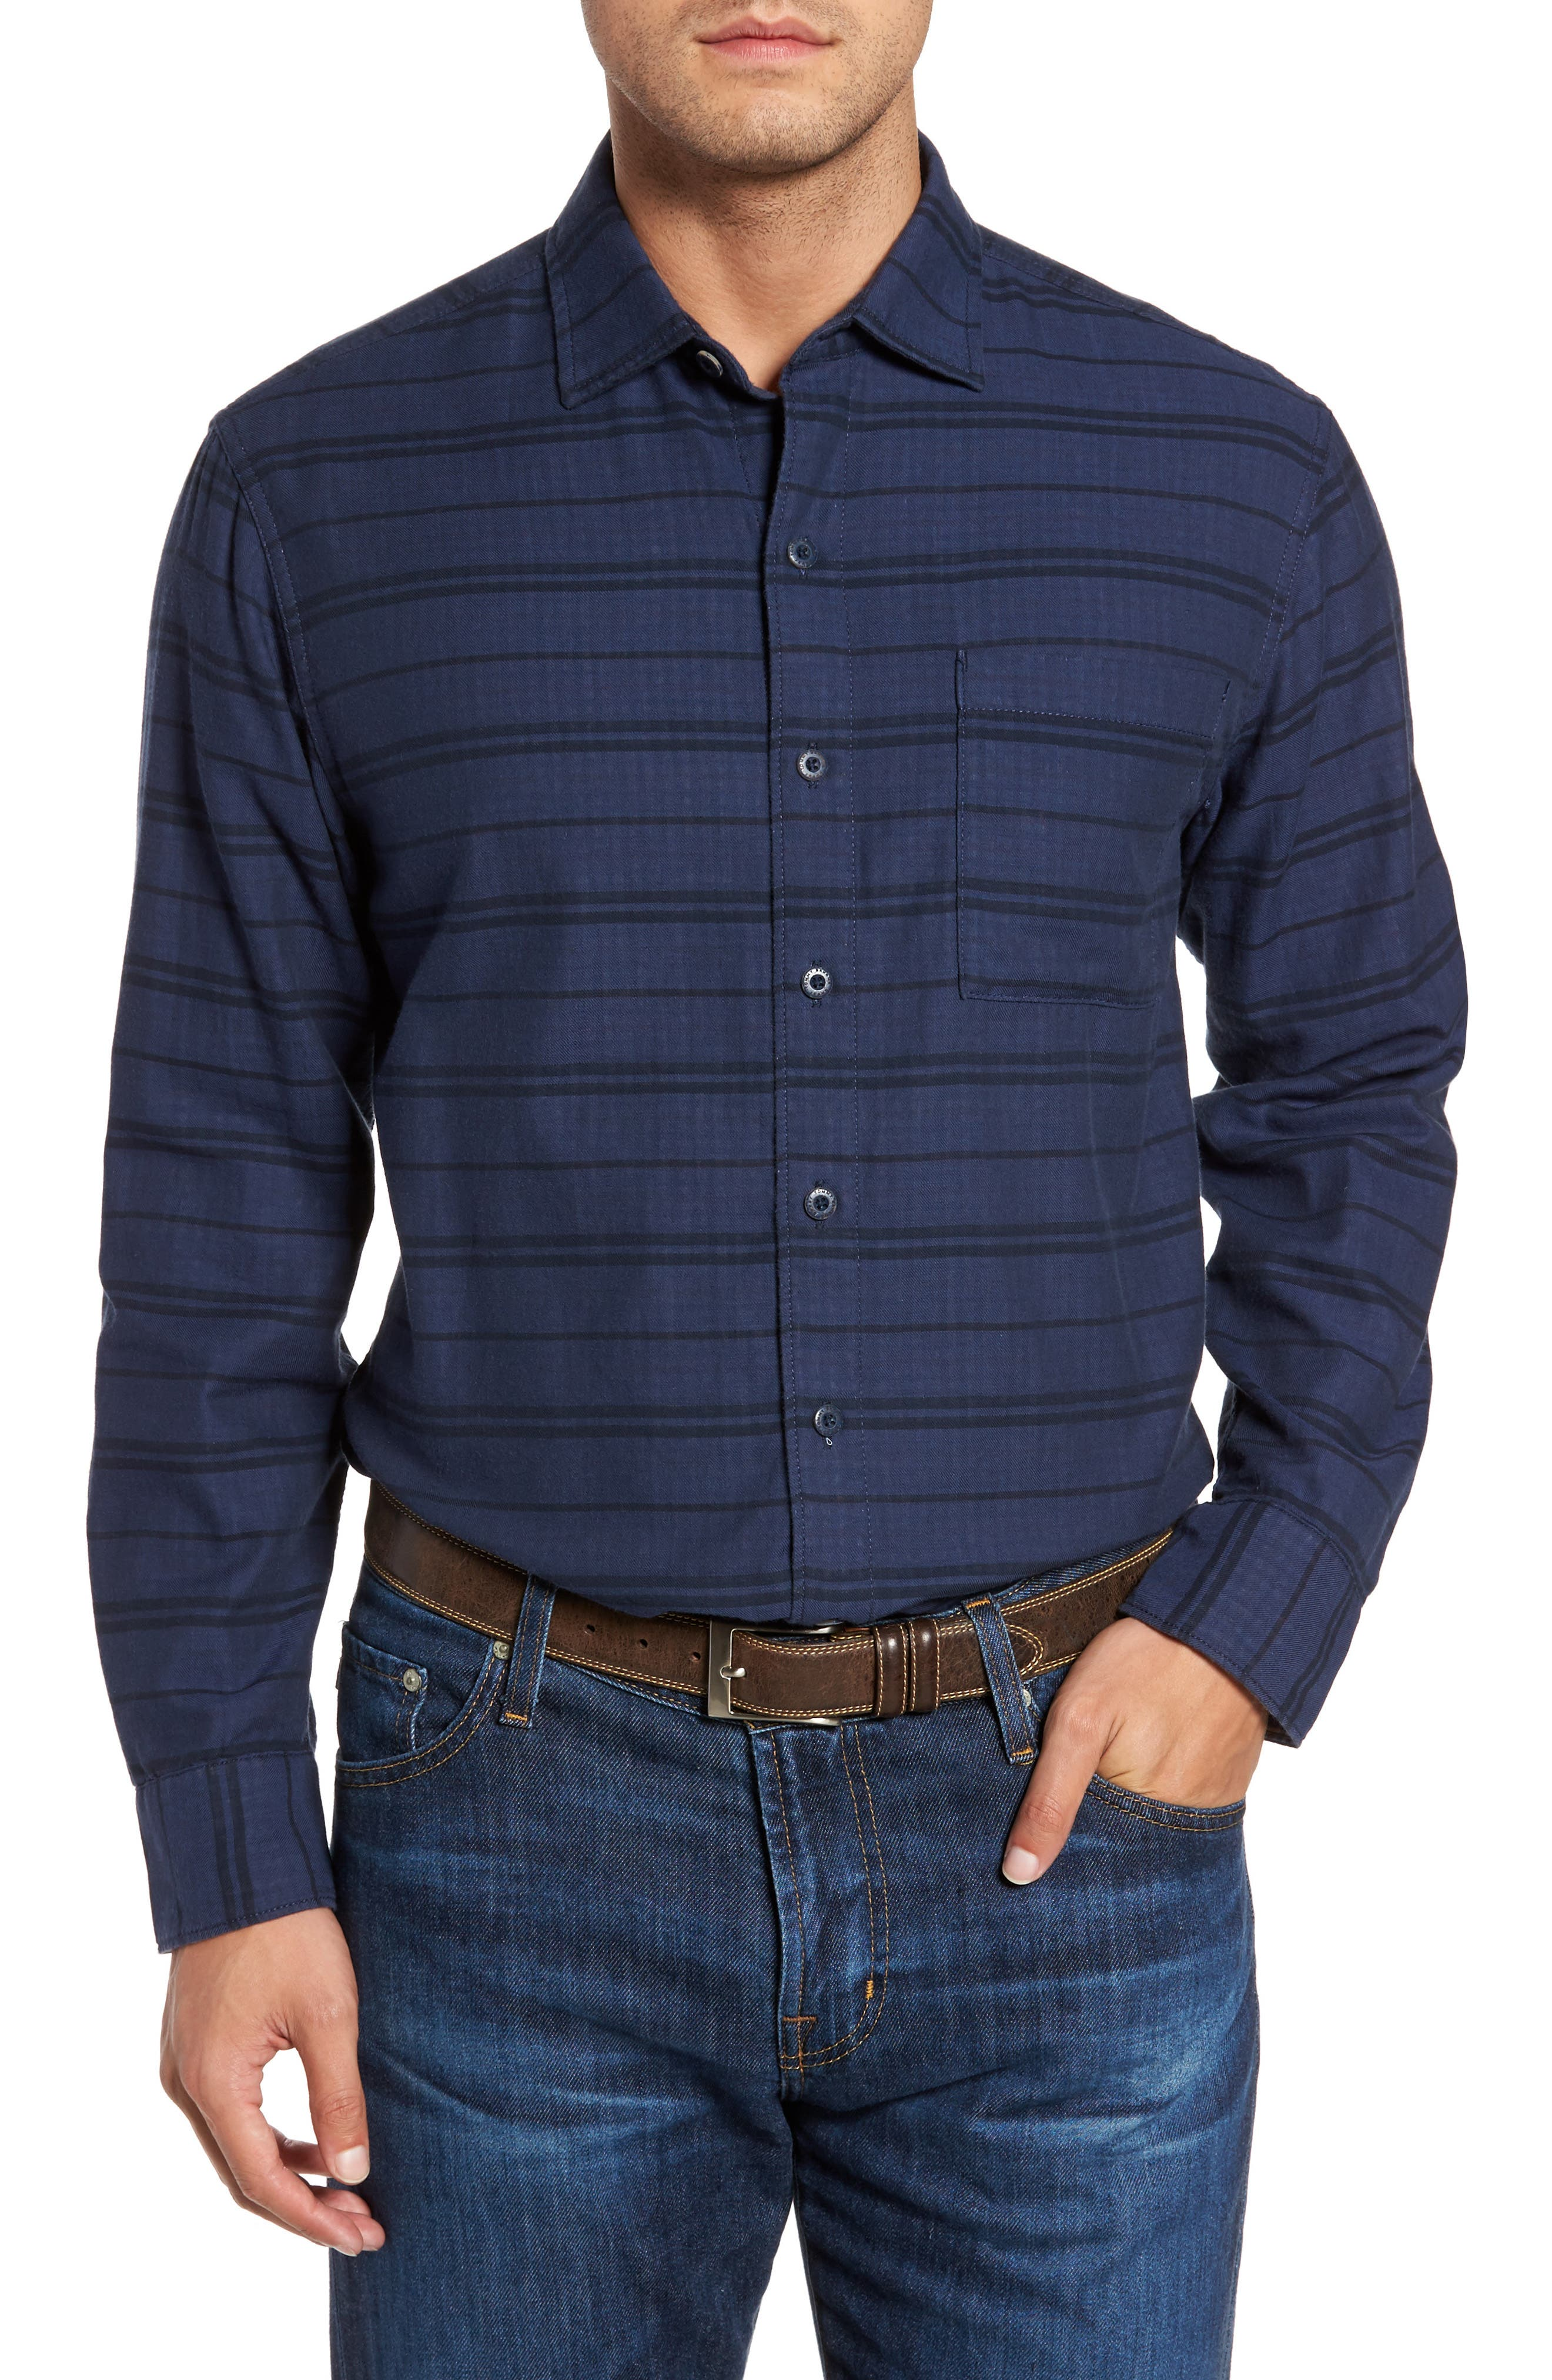 Tan Tan Stripe Standard Fit Sport Shirt,                         Main,                         color,